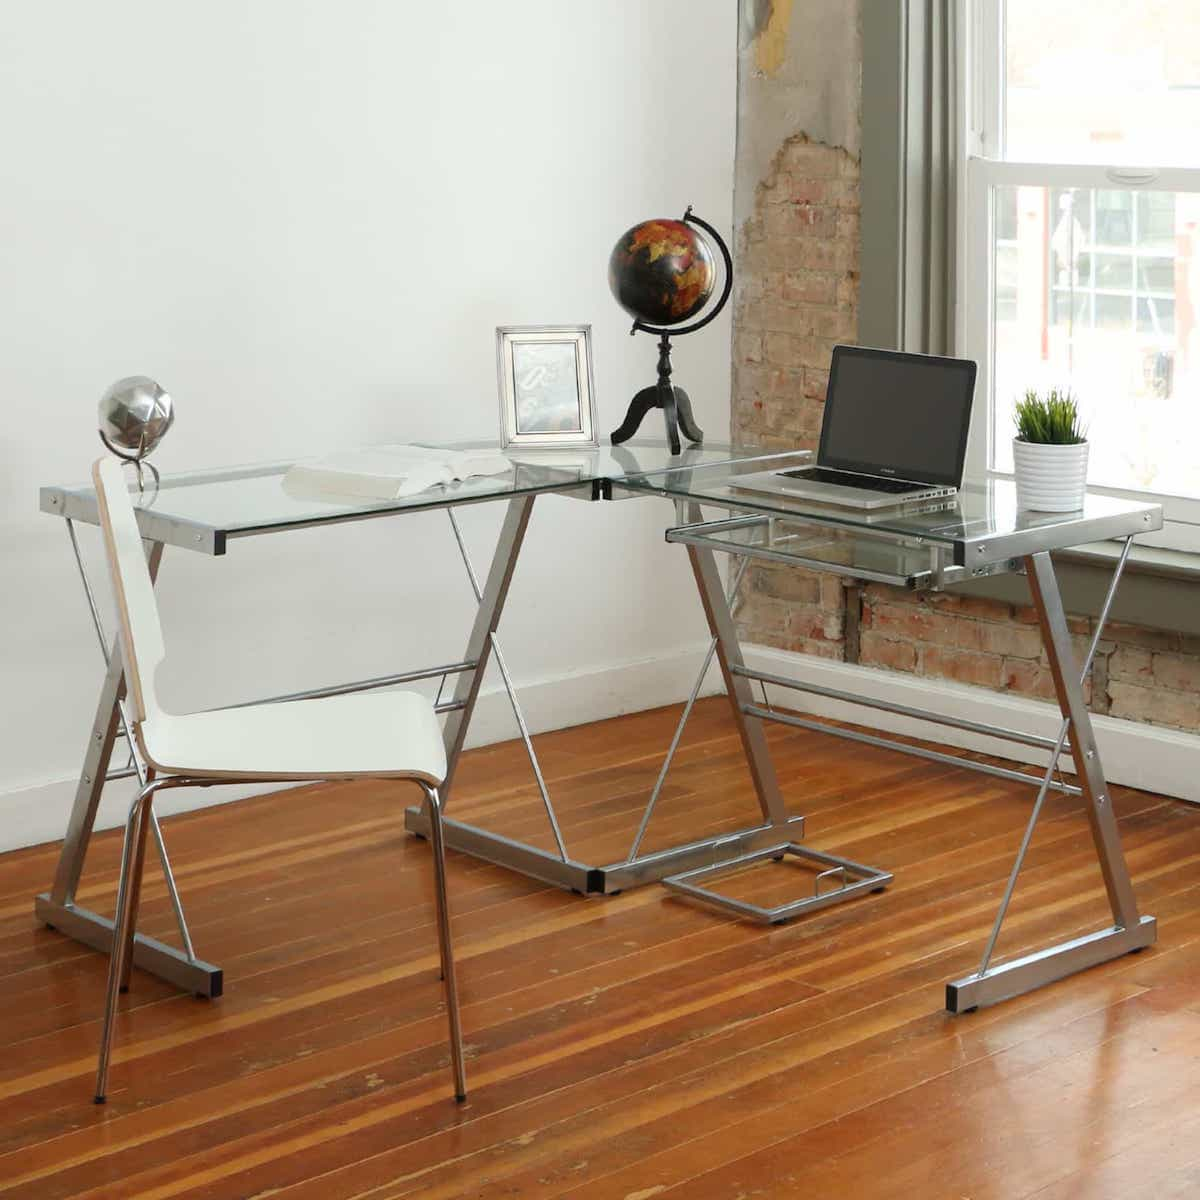 Portable Glass And Metal Corner Computer Desk For Apartment Home Office (View 6 of 8)